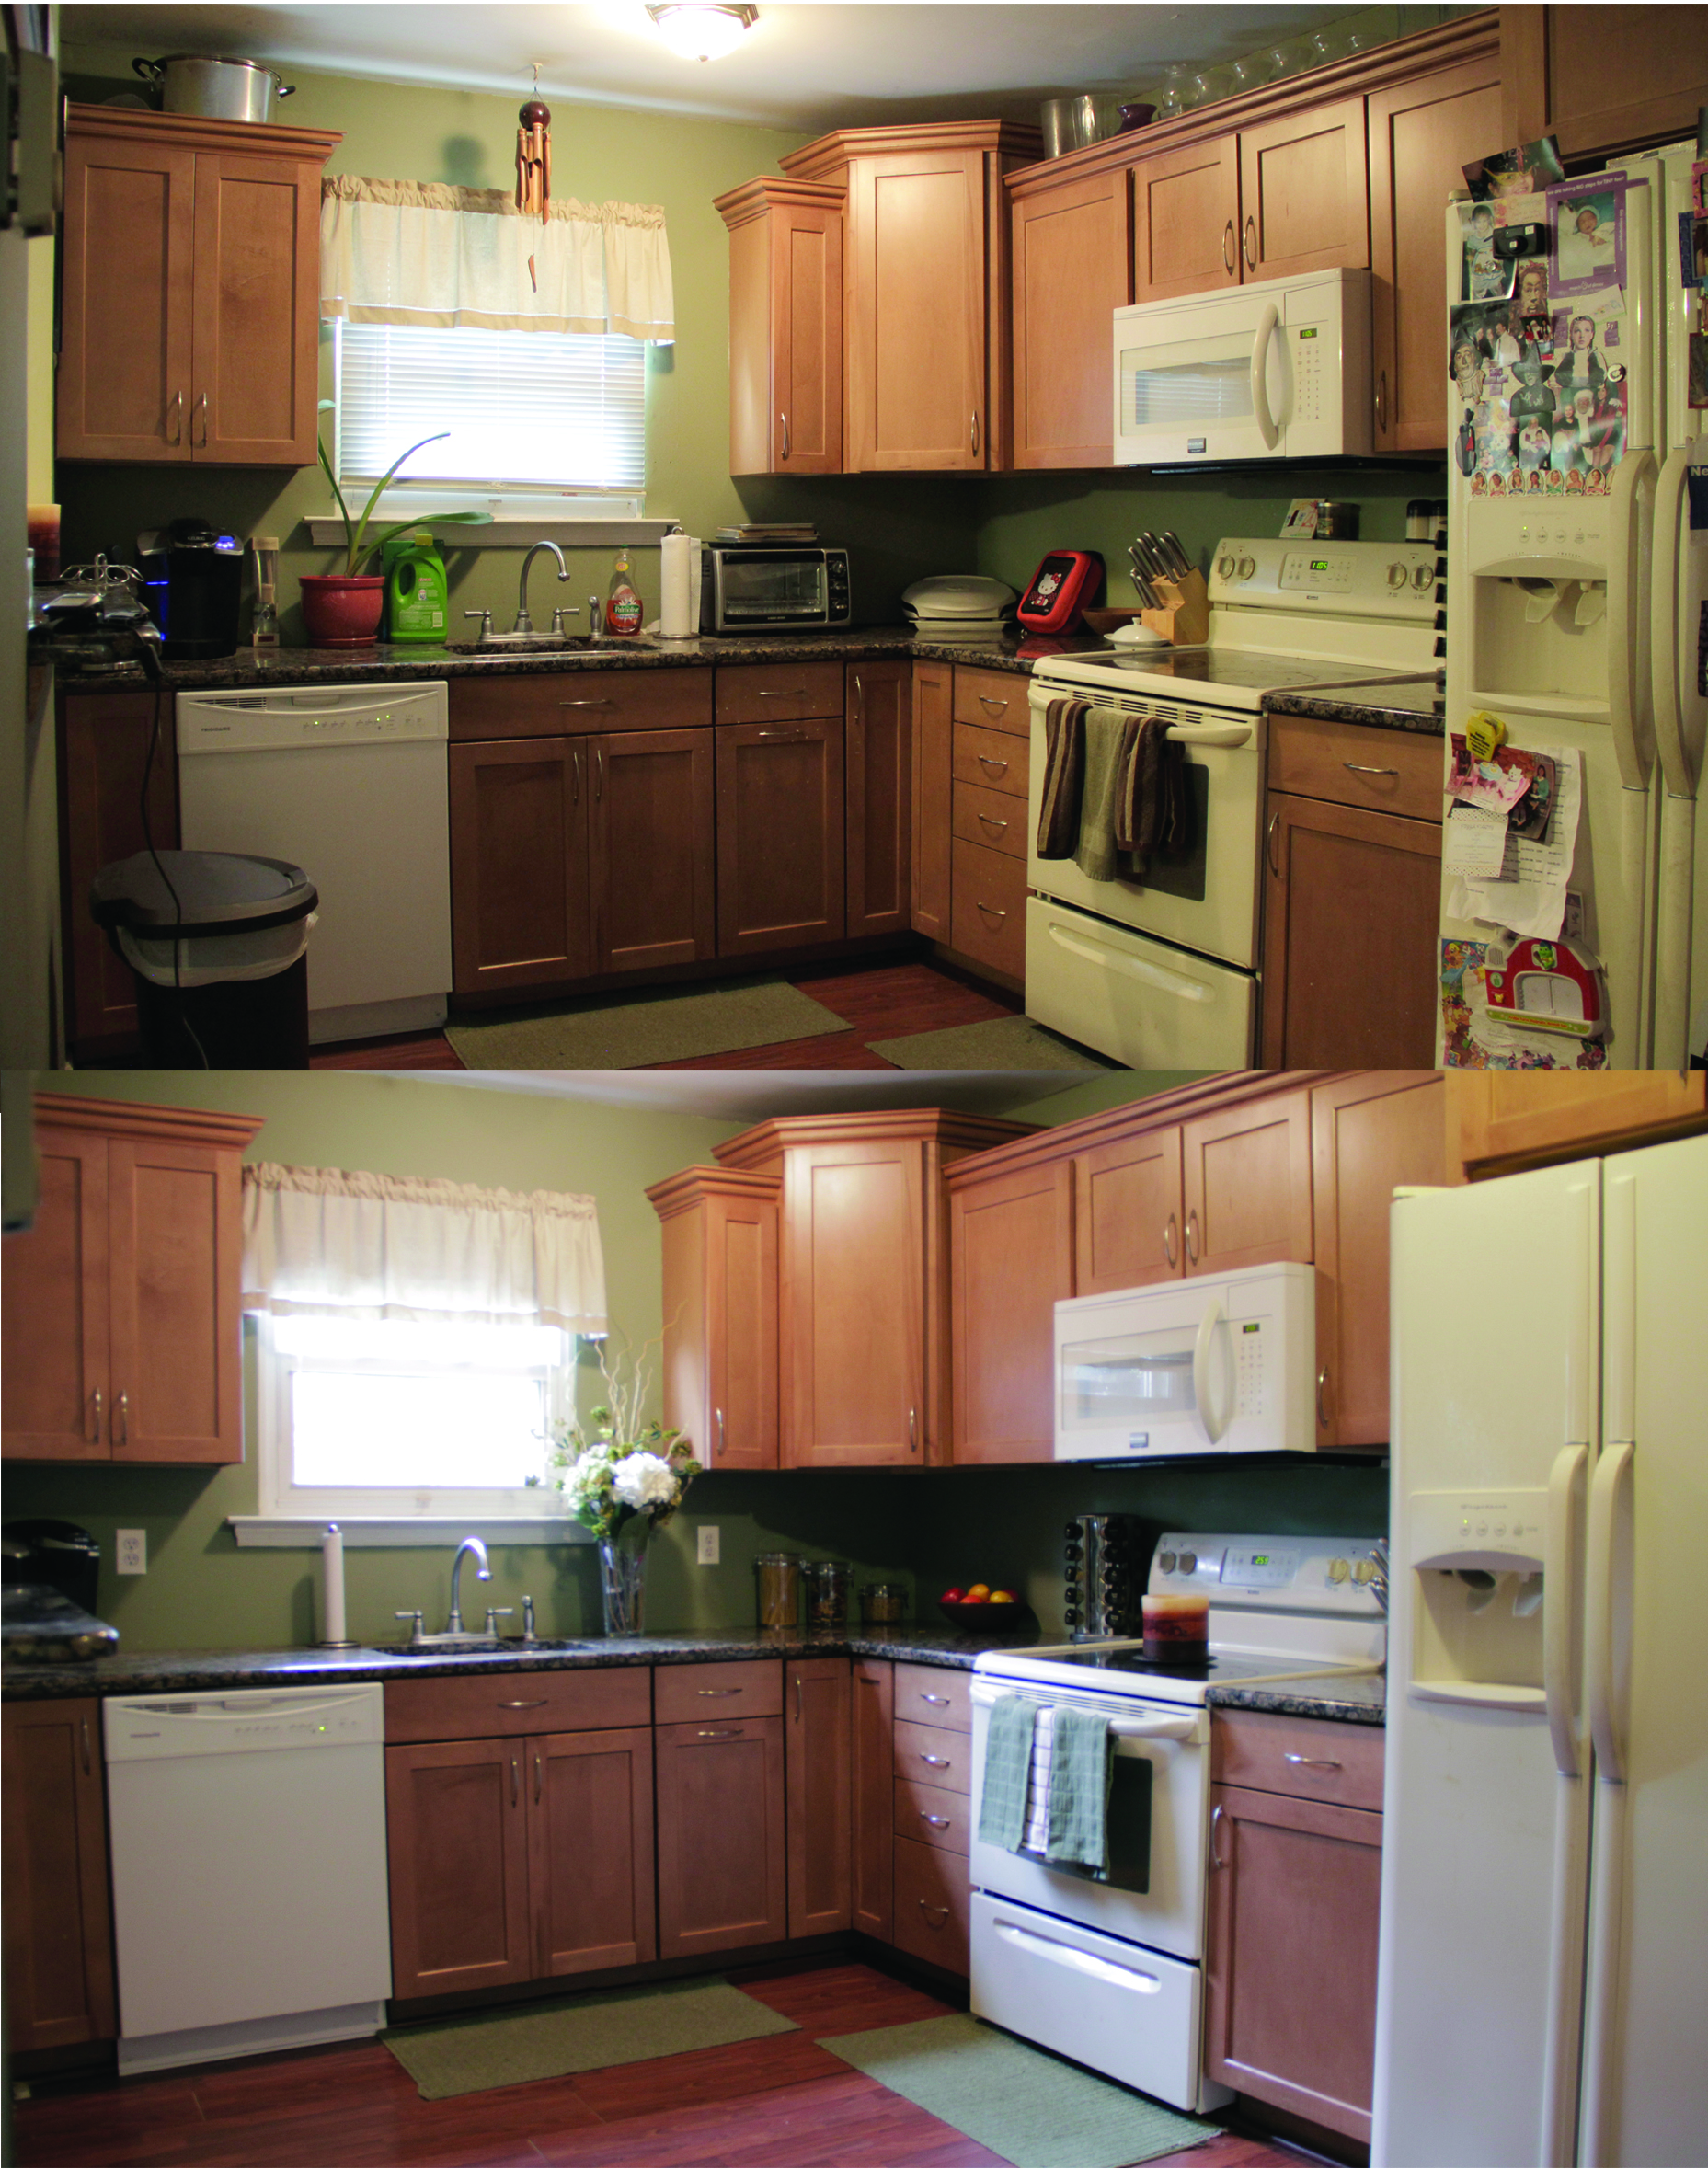 Home staging tips for the kitchen for Kitchen staging ideas